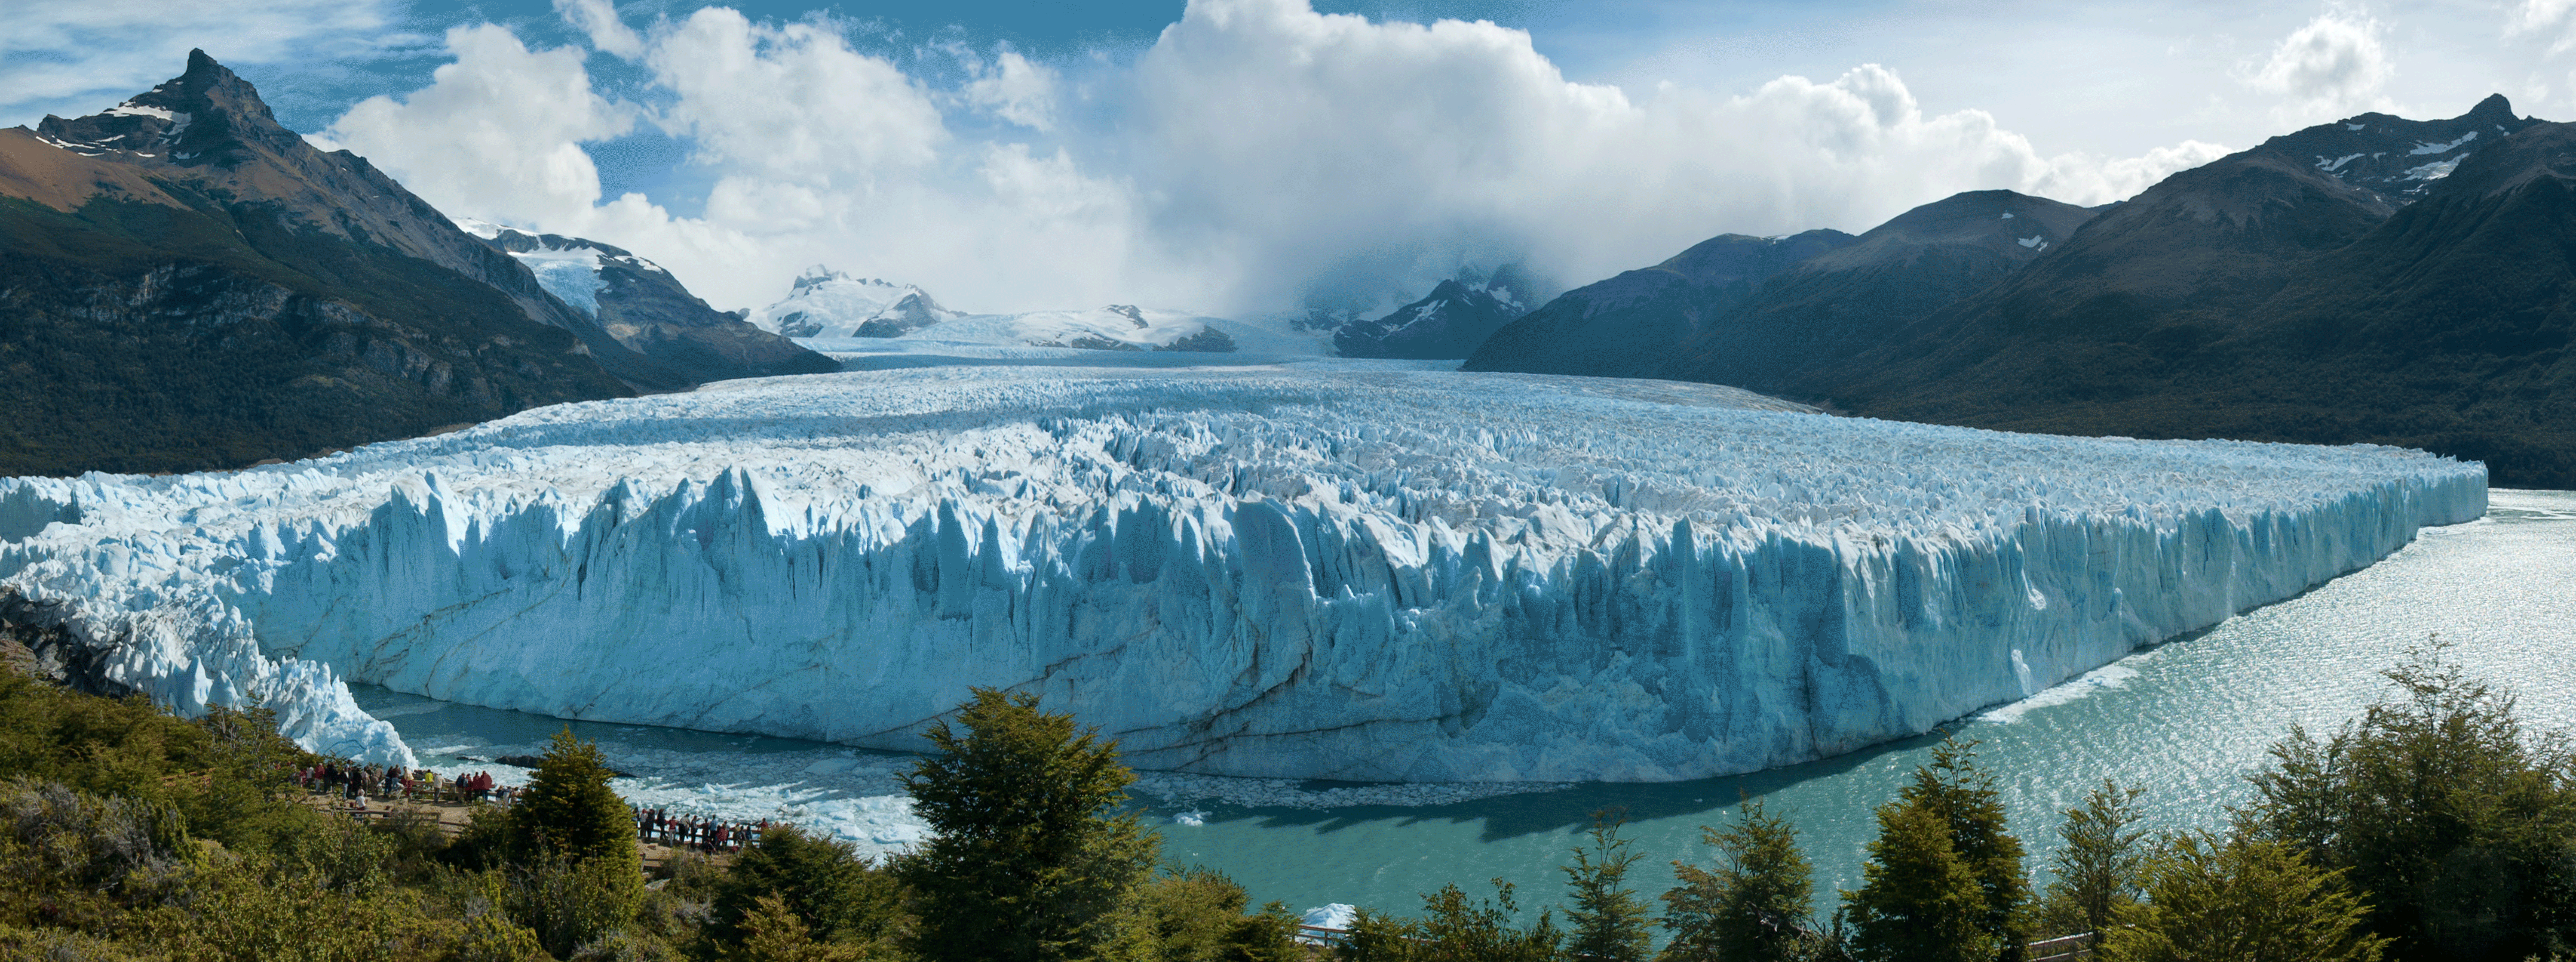 /resource/Images/southamerica/argentina/headerimage/Perito-Moreno-Glacier1.png